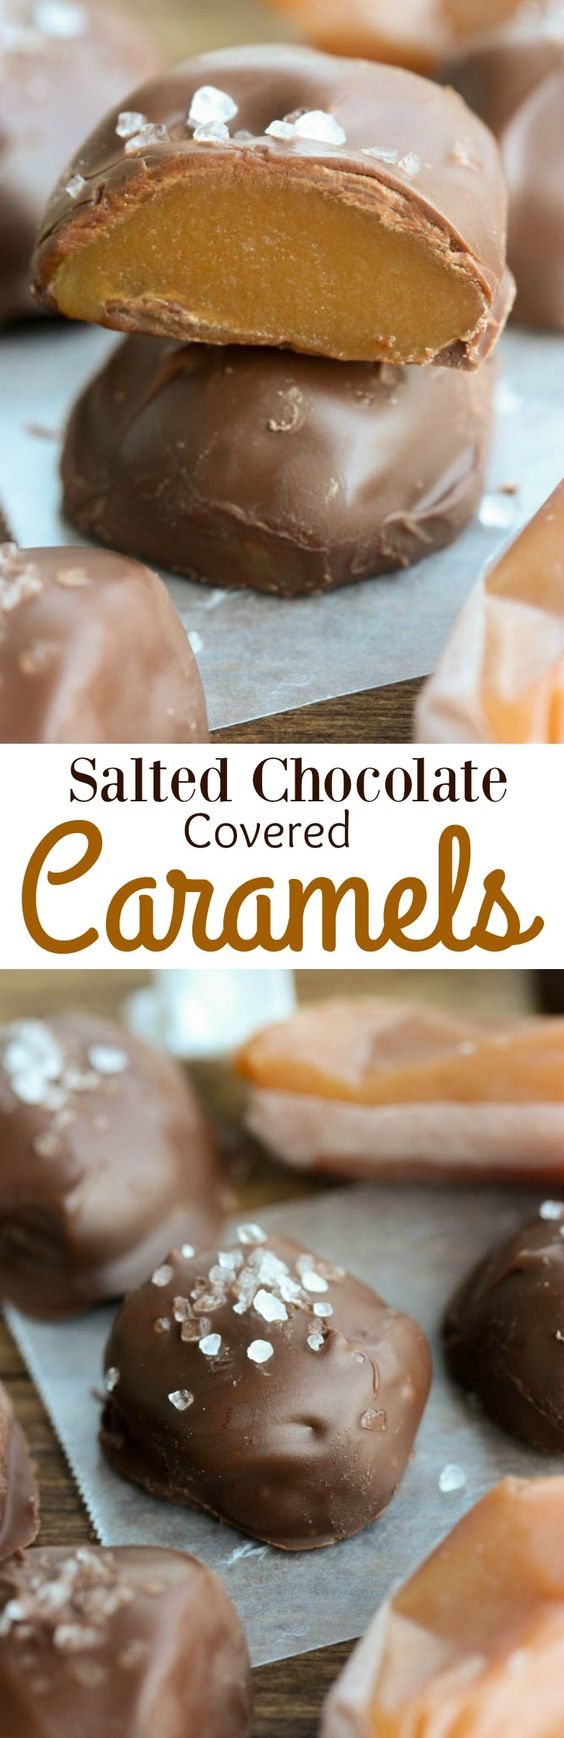 Salted Chocolate Covered Caramels-Soft homemade caramels covered in chocolate and sprinkled with sea salt. | Tastes Better From Scratch